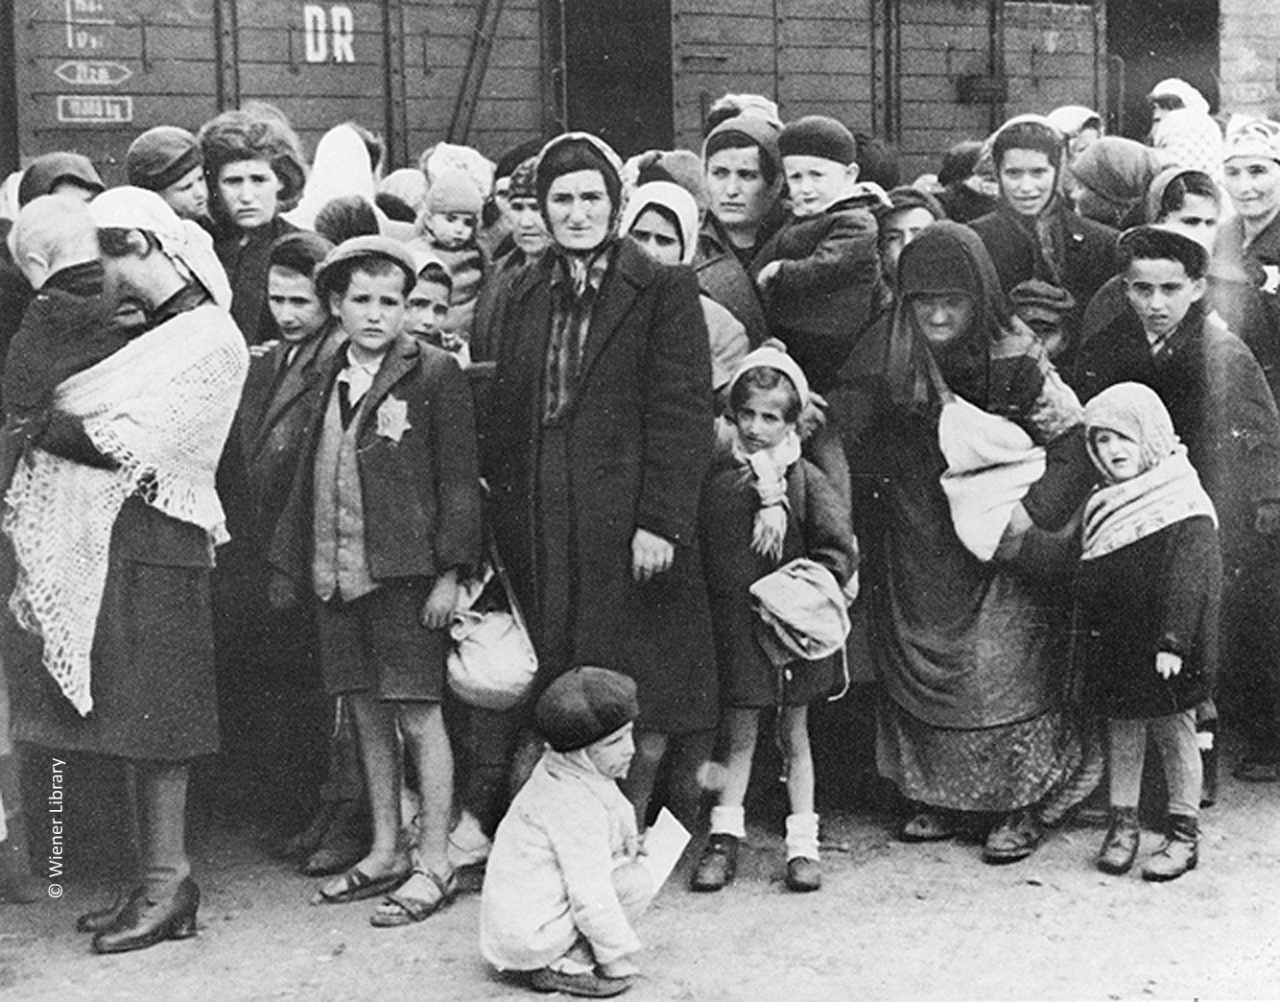 Arrival of women and children at Auschwitz-Birkenau in May 1944